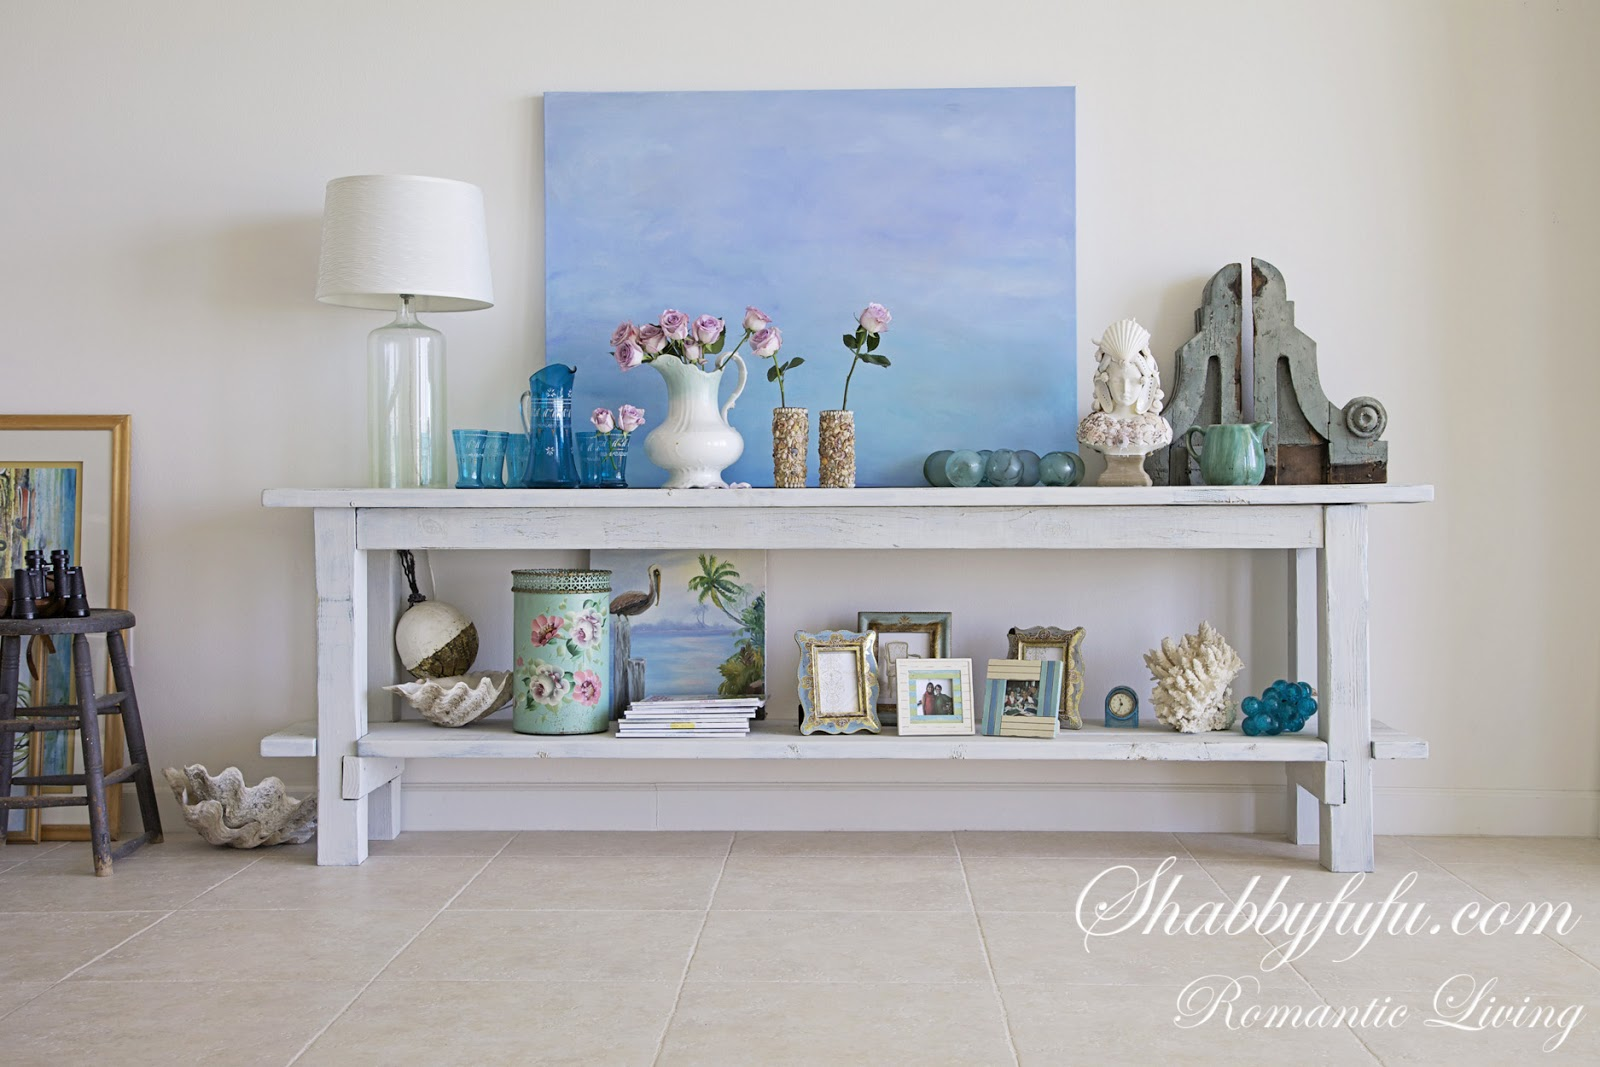 Rustic beach style shelf unit with light blue and cream accessories